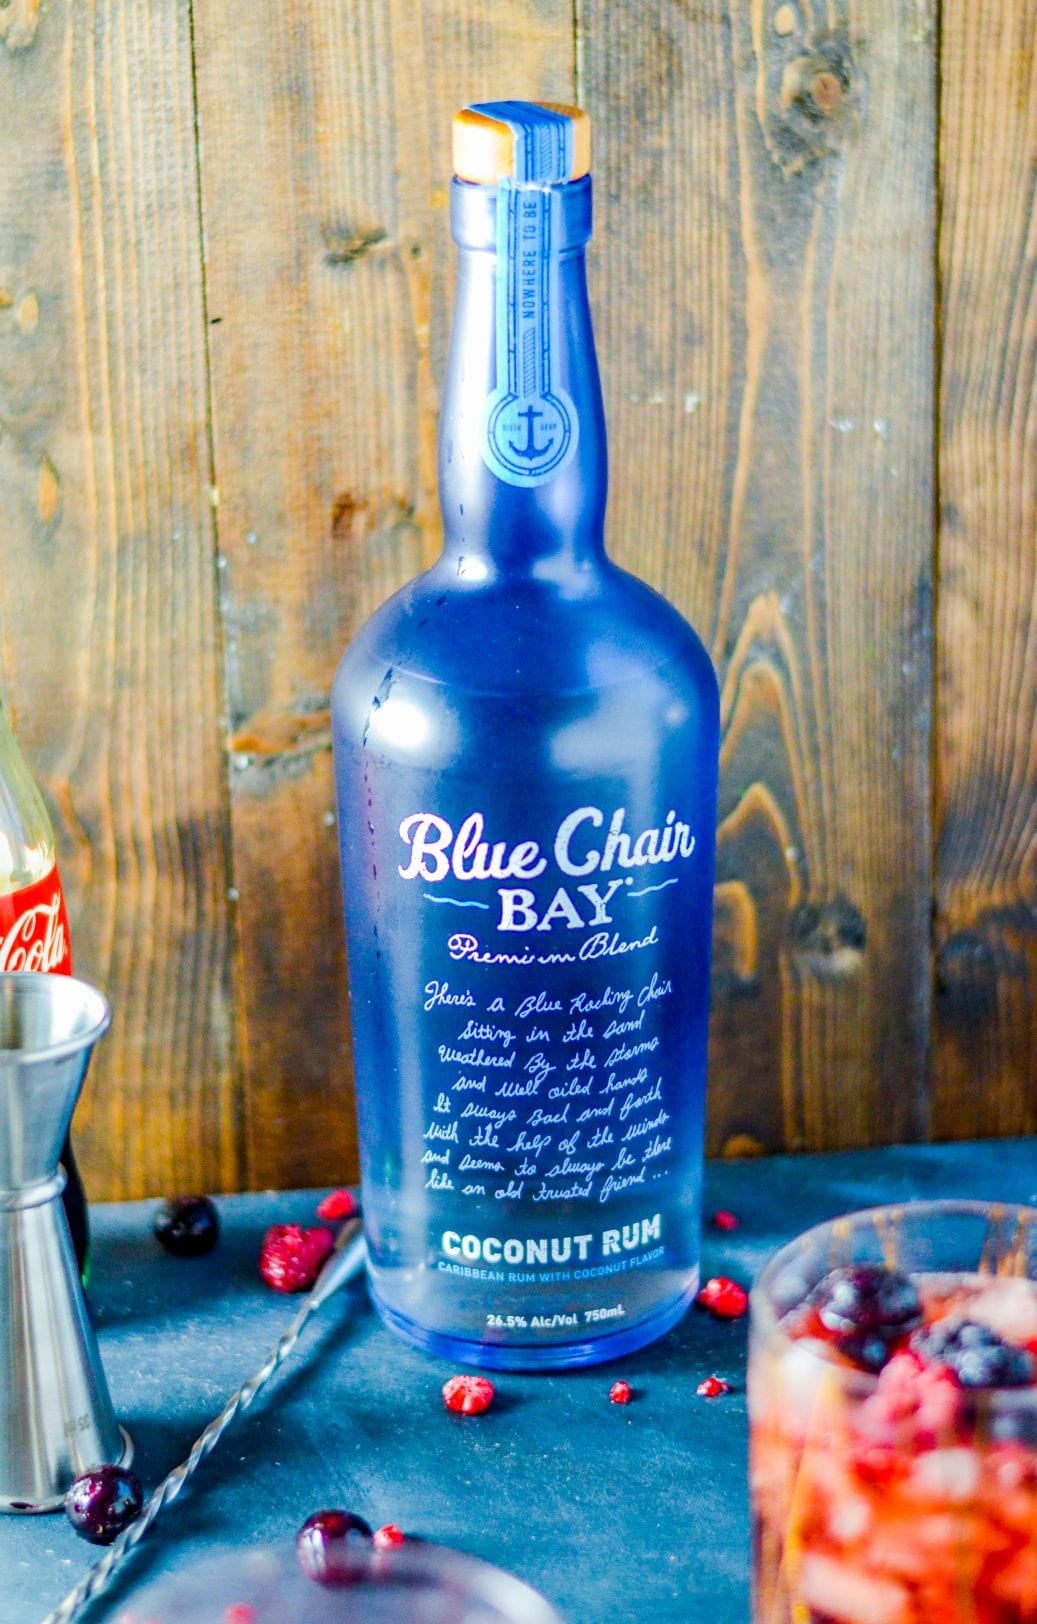 Blue Chair Bay Coconut Rum Mixed Berry Coconut Rum And Coke